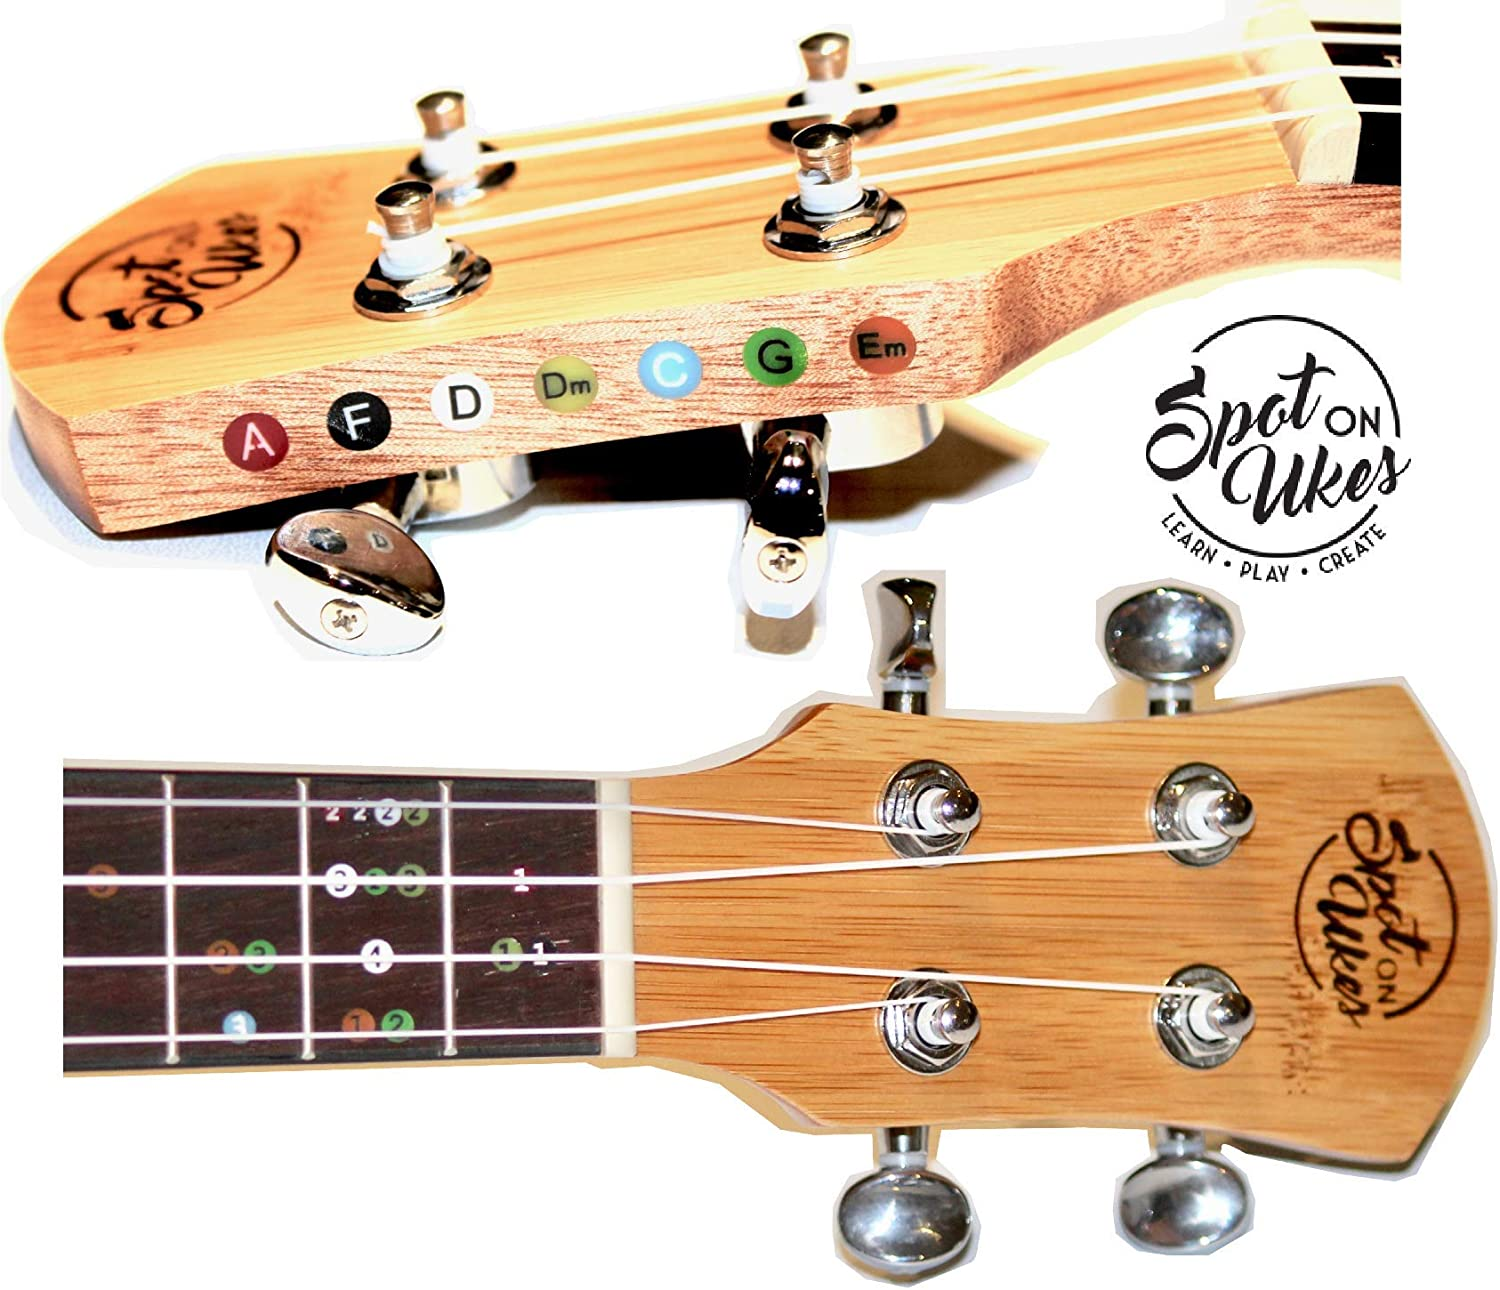 Ukulele With Built In Self-Teaching System. Spot On Ukes Beginner Uke Great Quality No Lessons needed. Bamboo Soprano…